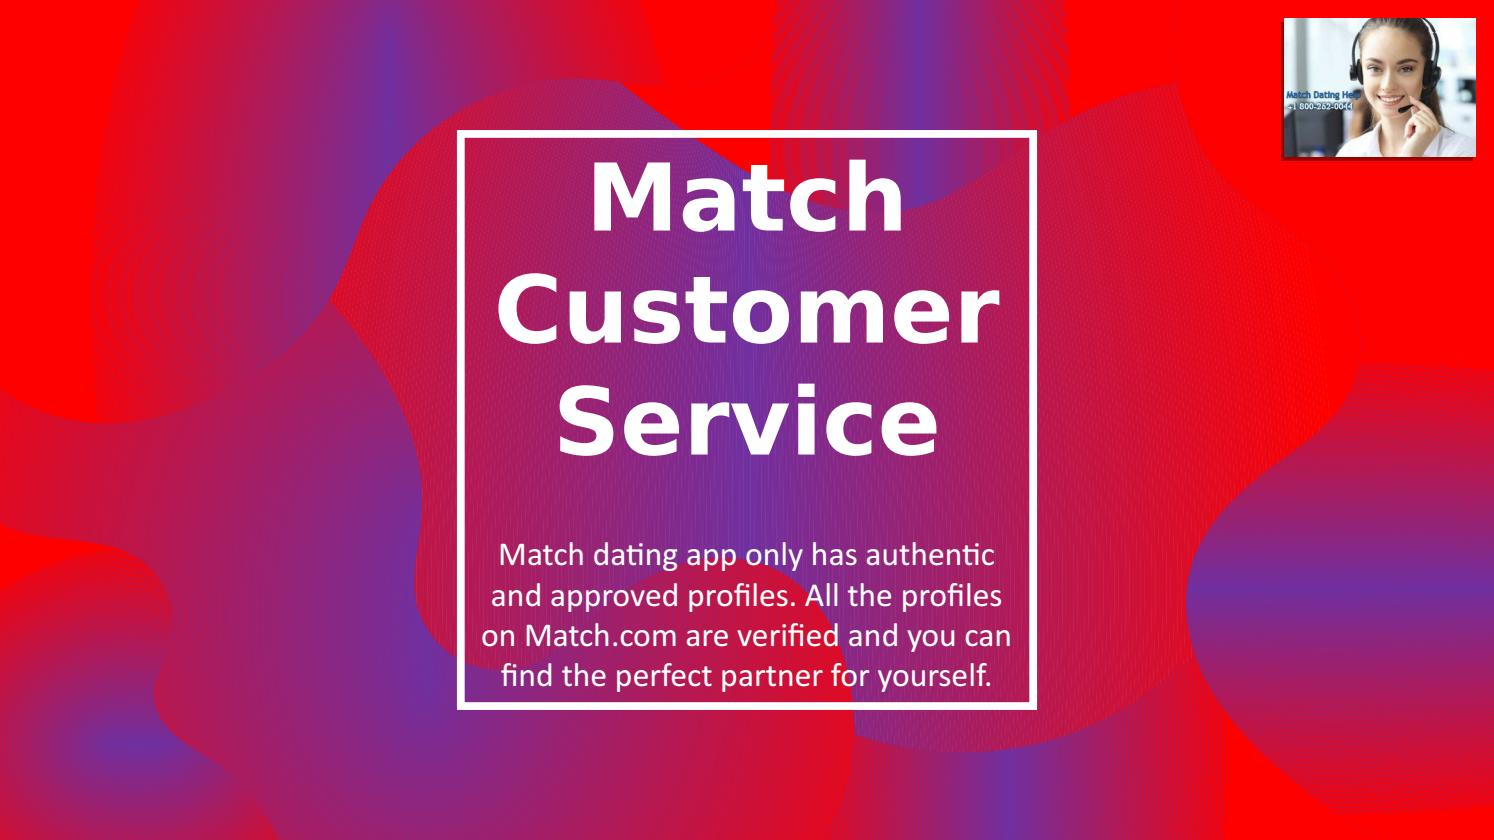 Customer care phone number for match com